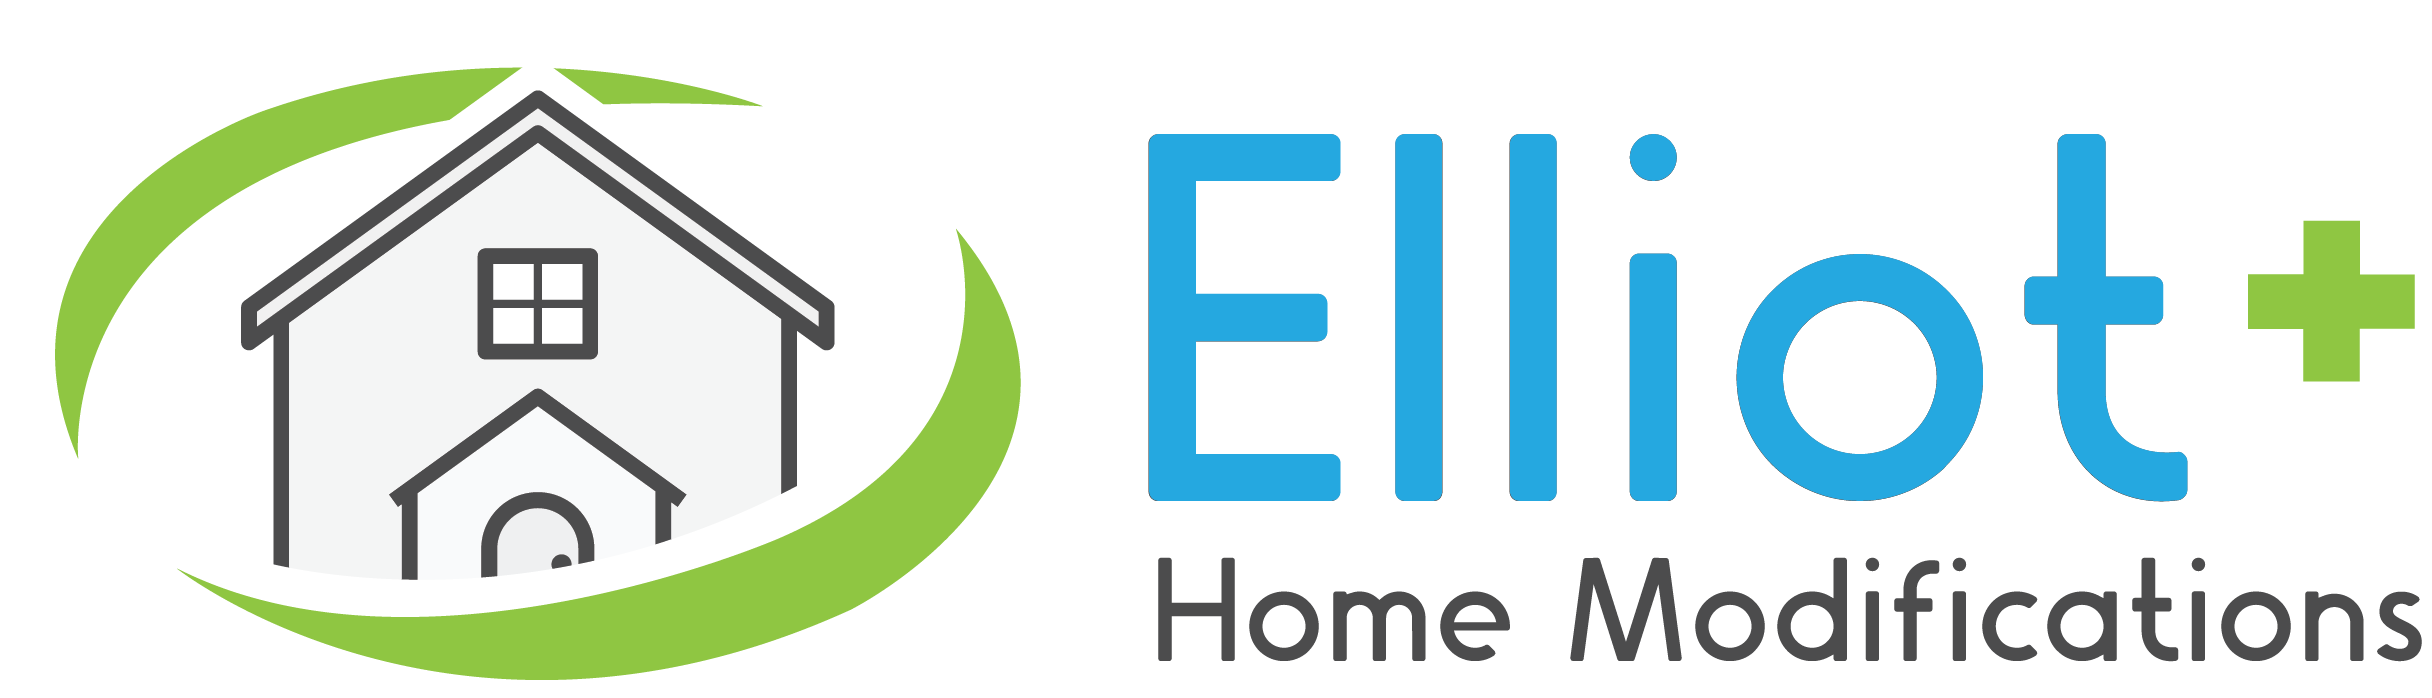 Elliot Home Modifications